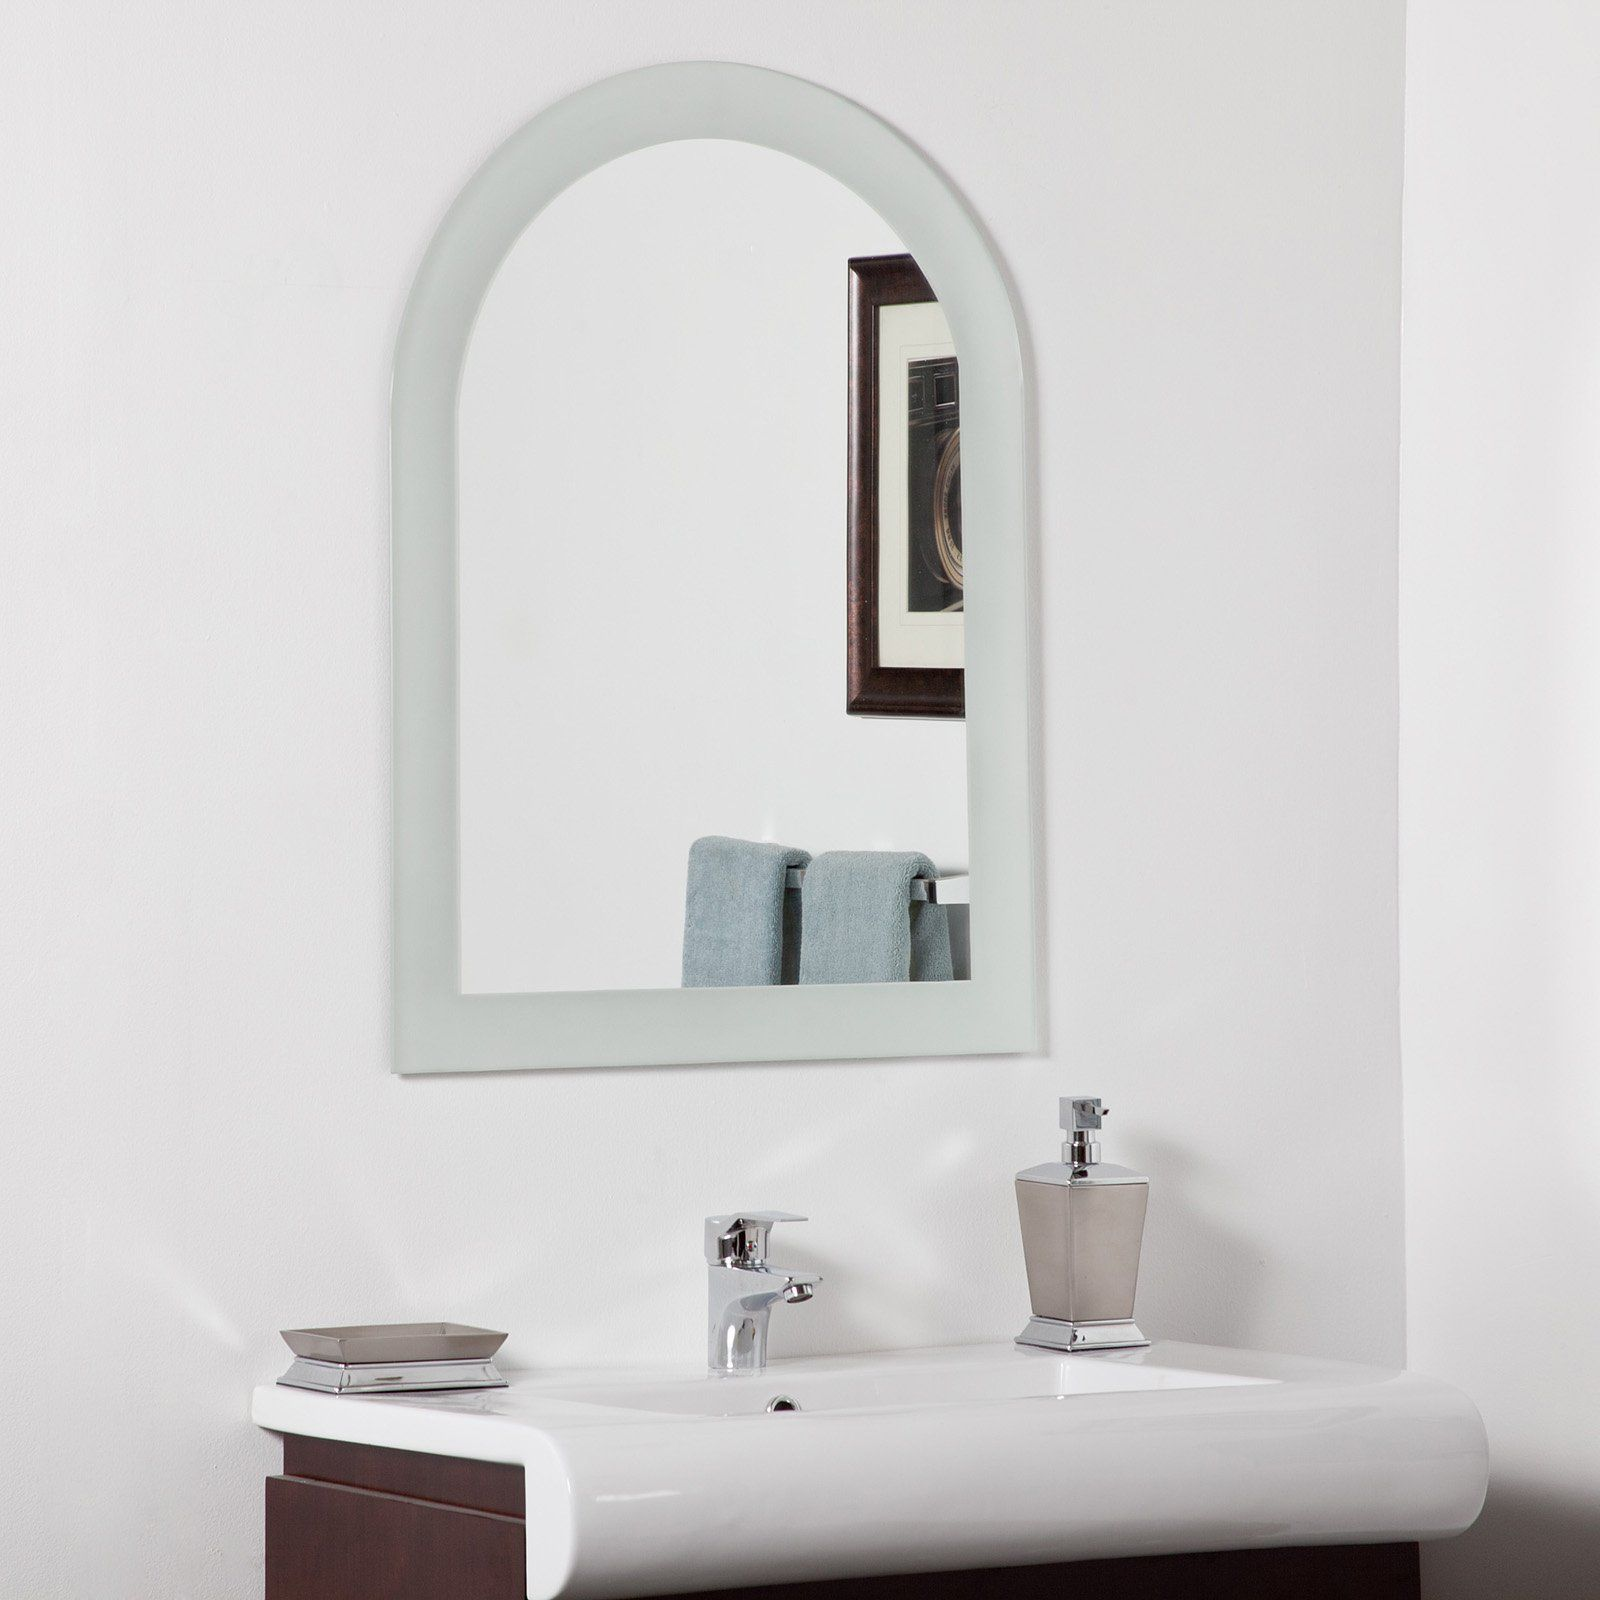 Pic On Shop Decor Wonderland Khloe Modern Bathroom Mirror at Lowe us Canada Find our selection of bathroom mirrors at the lowest price guaranteed with price match